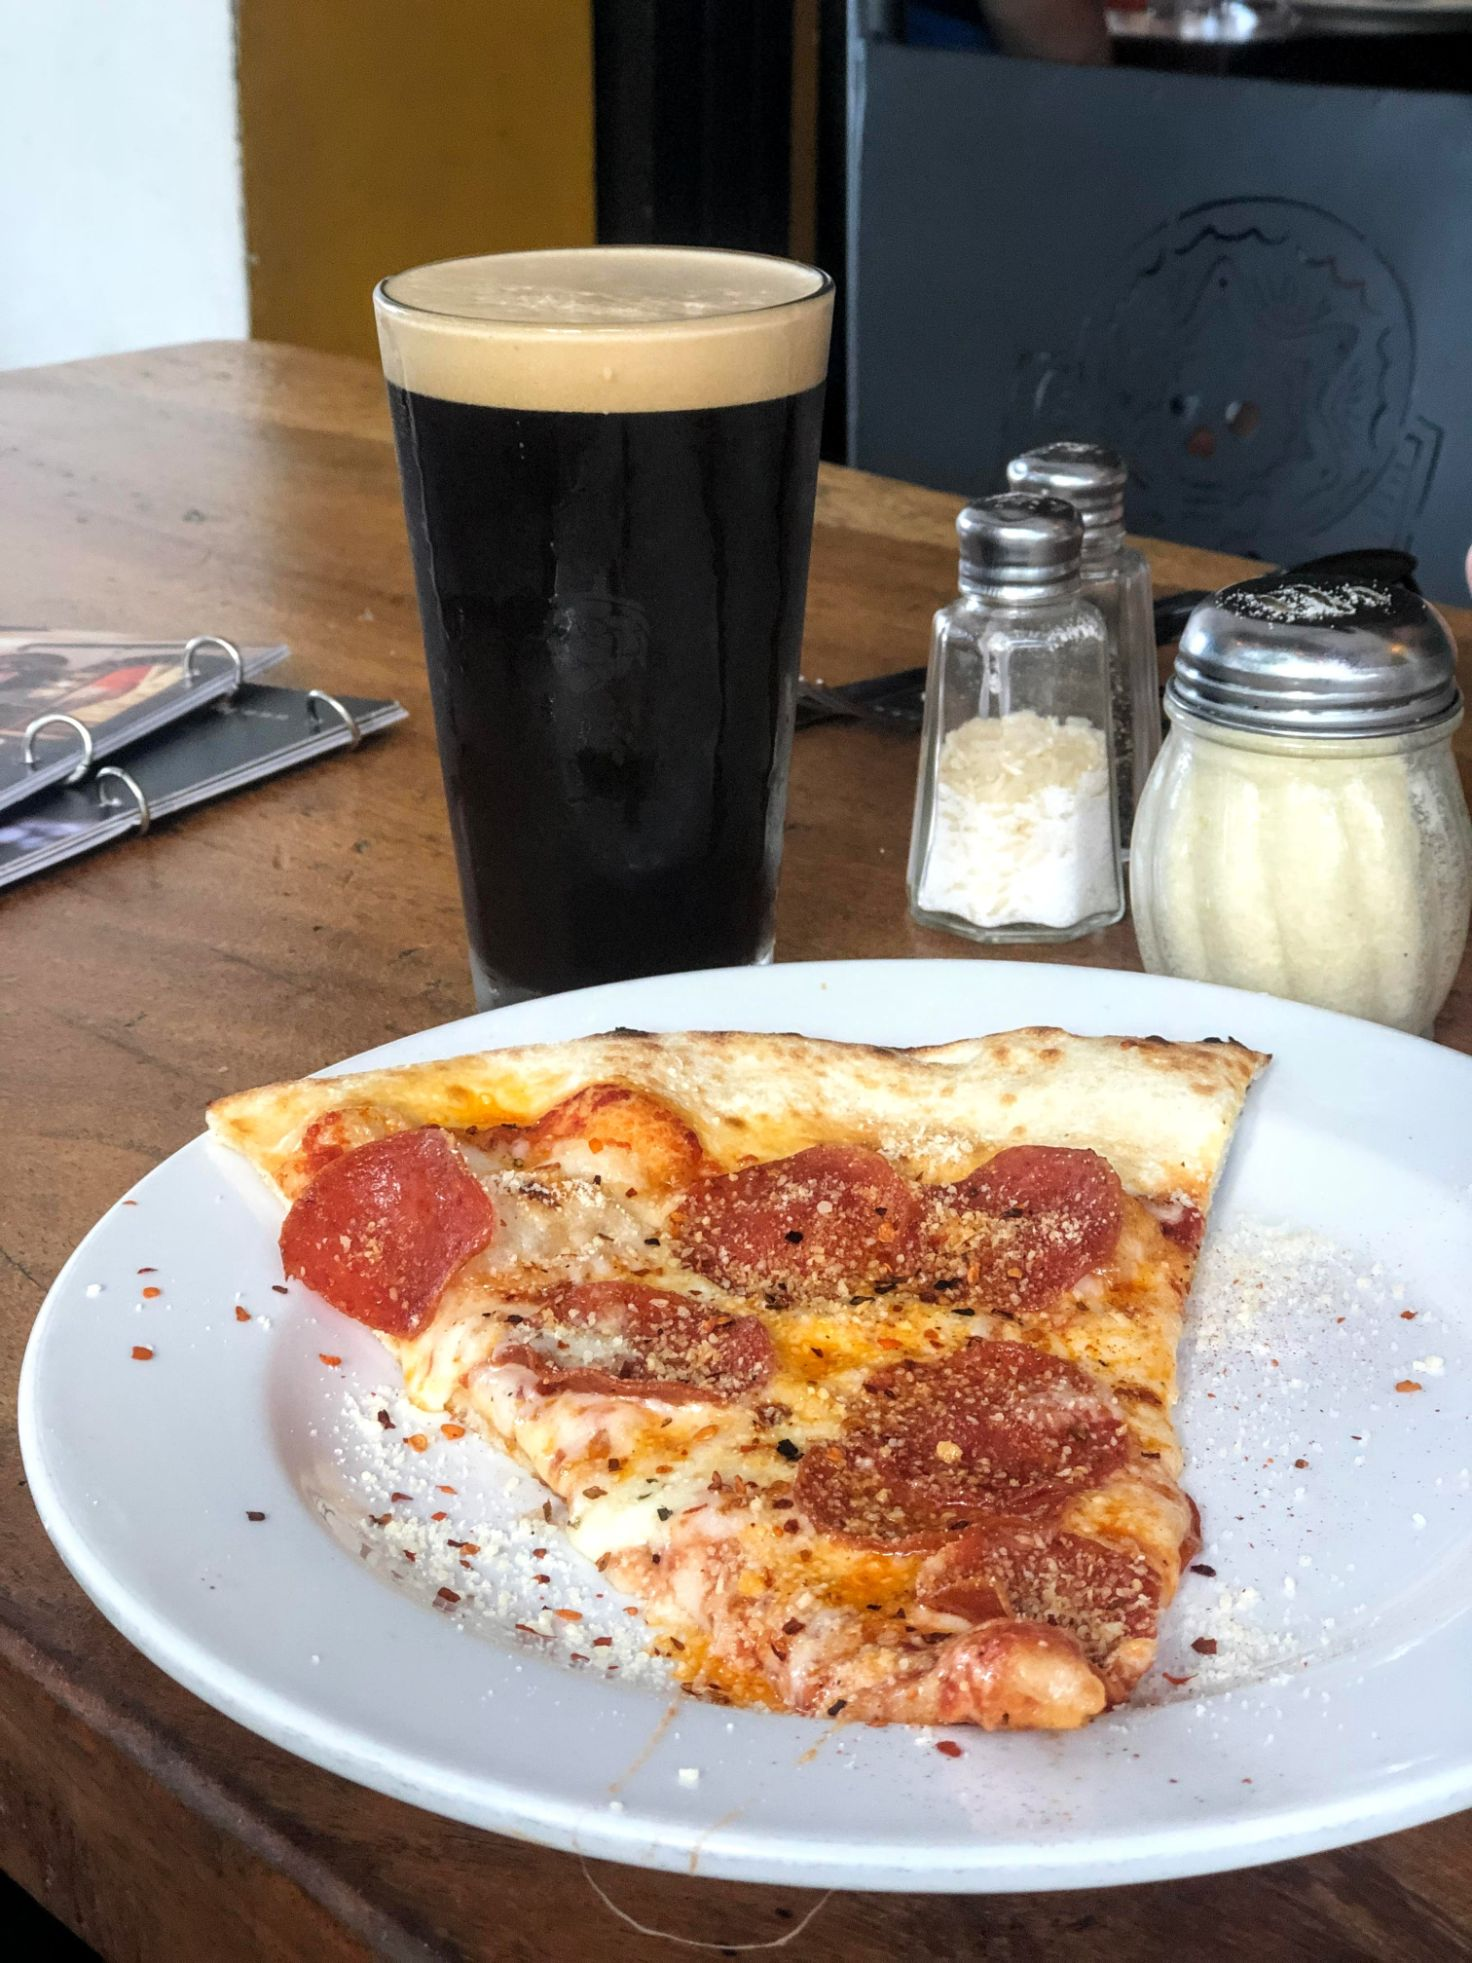 Dark stout and slice of pepperoni pizza at Muertos Brewing